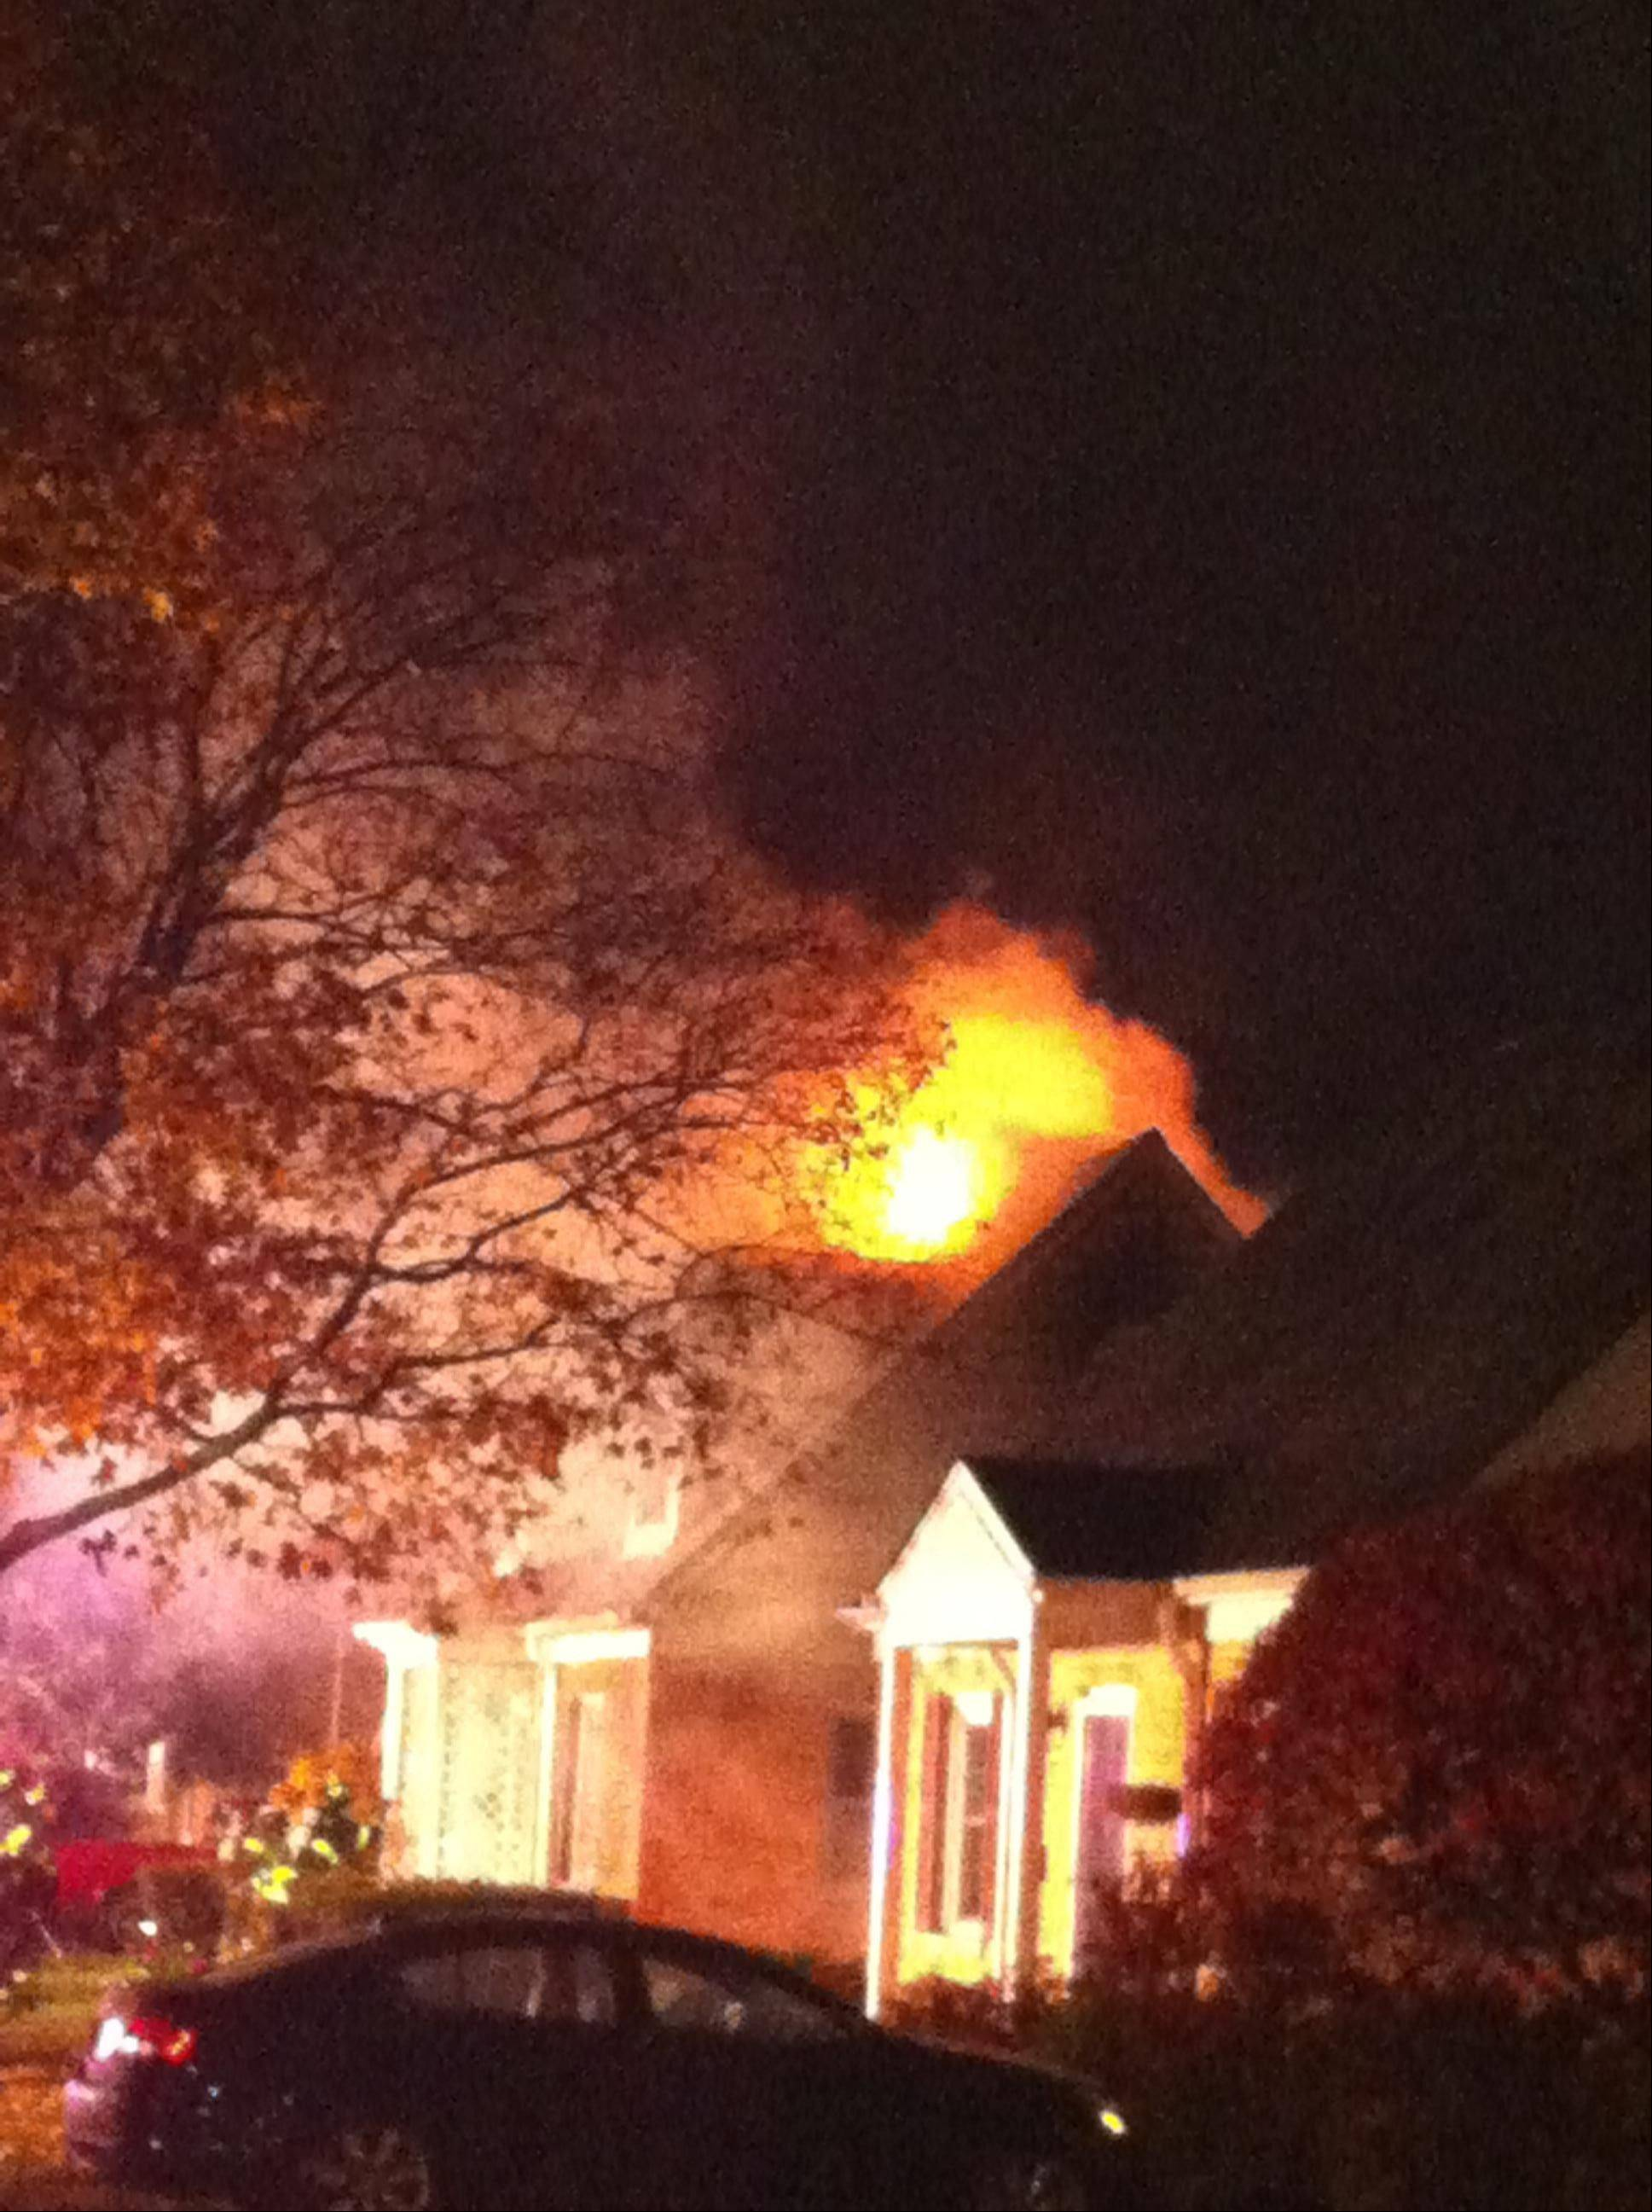 Neighbors were awakened by the early morning house fire in Arlington Heights.